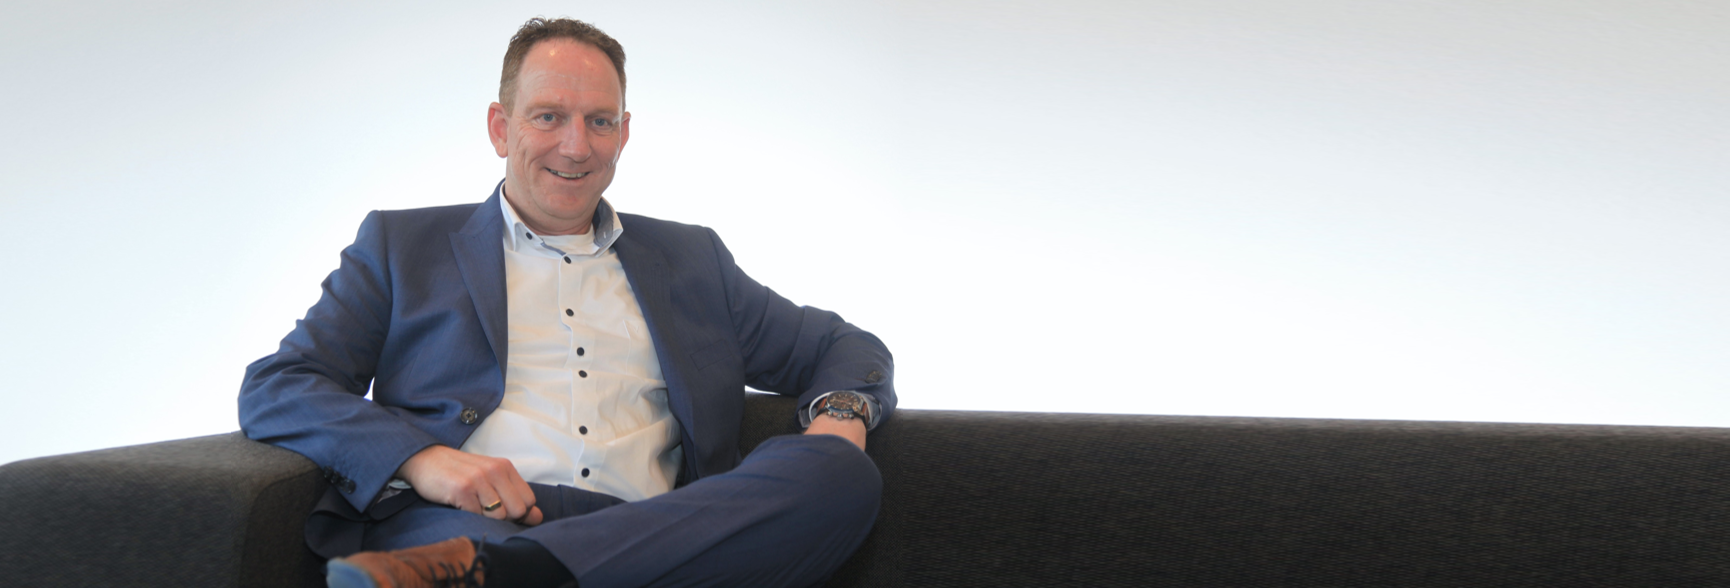 Paul Boon Manager Verbanen Arbo Unie Collectief Outplacement